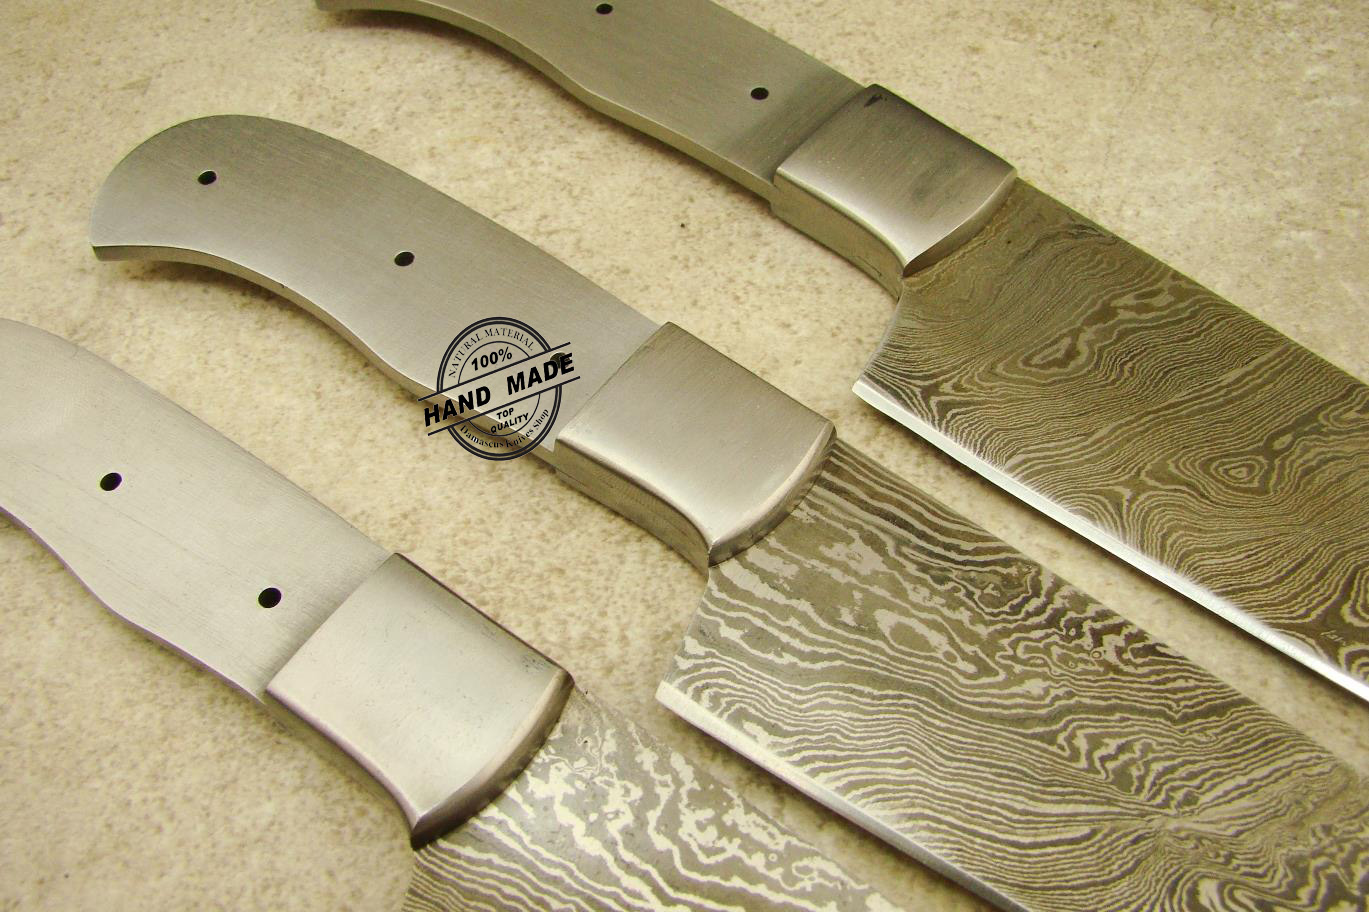 lot of 3 pcs professional chef knife blank blade custom